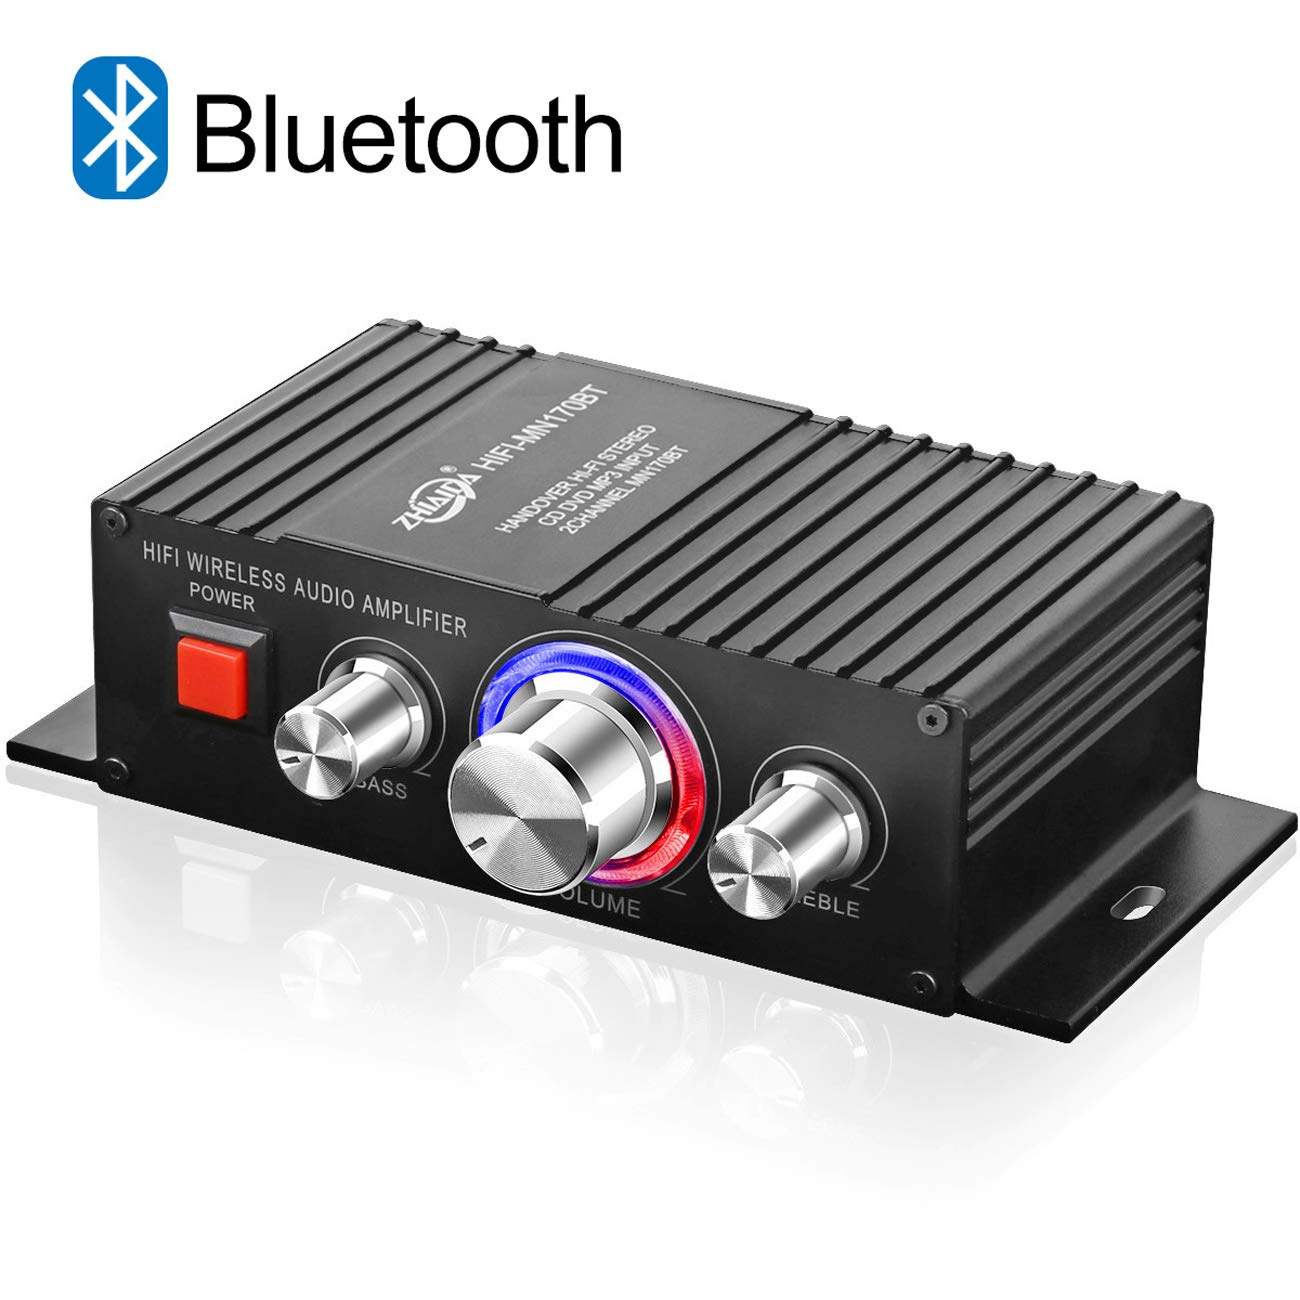 DUTISON HiFi Audio Mini Amplifier - Bluetooth 4.2 Digital 2 Channel 60W Home Stereo Power Amplifiers with Blue LED Indicator Black - Power Adapter Not Included